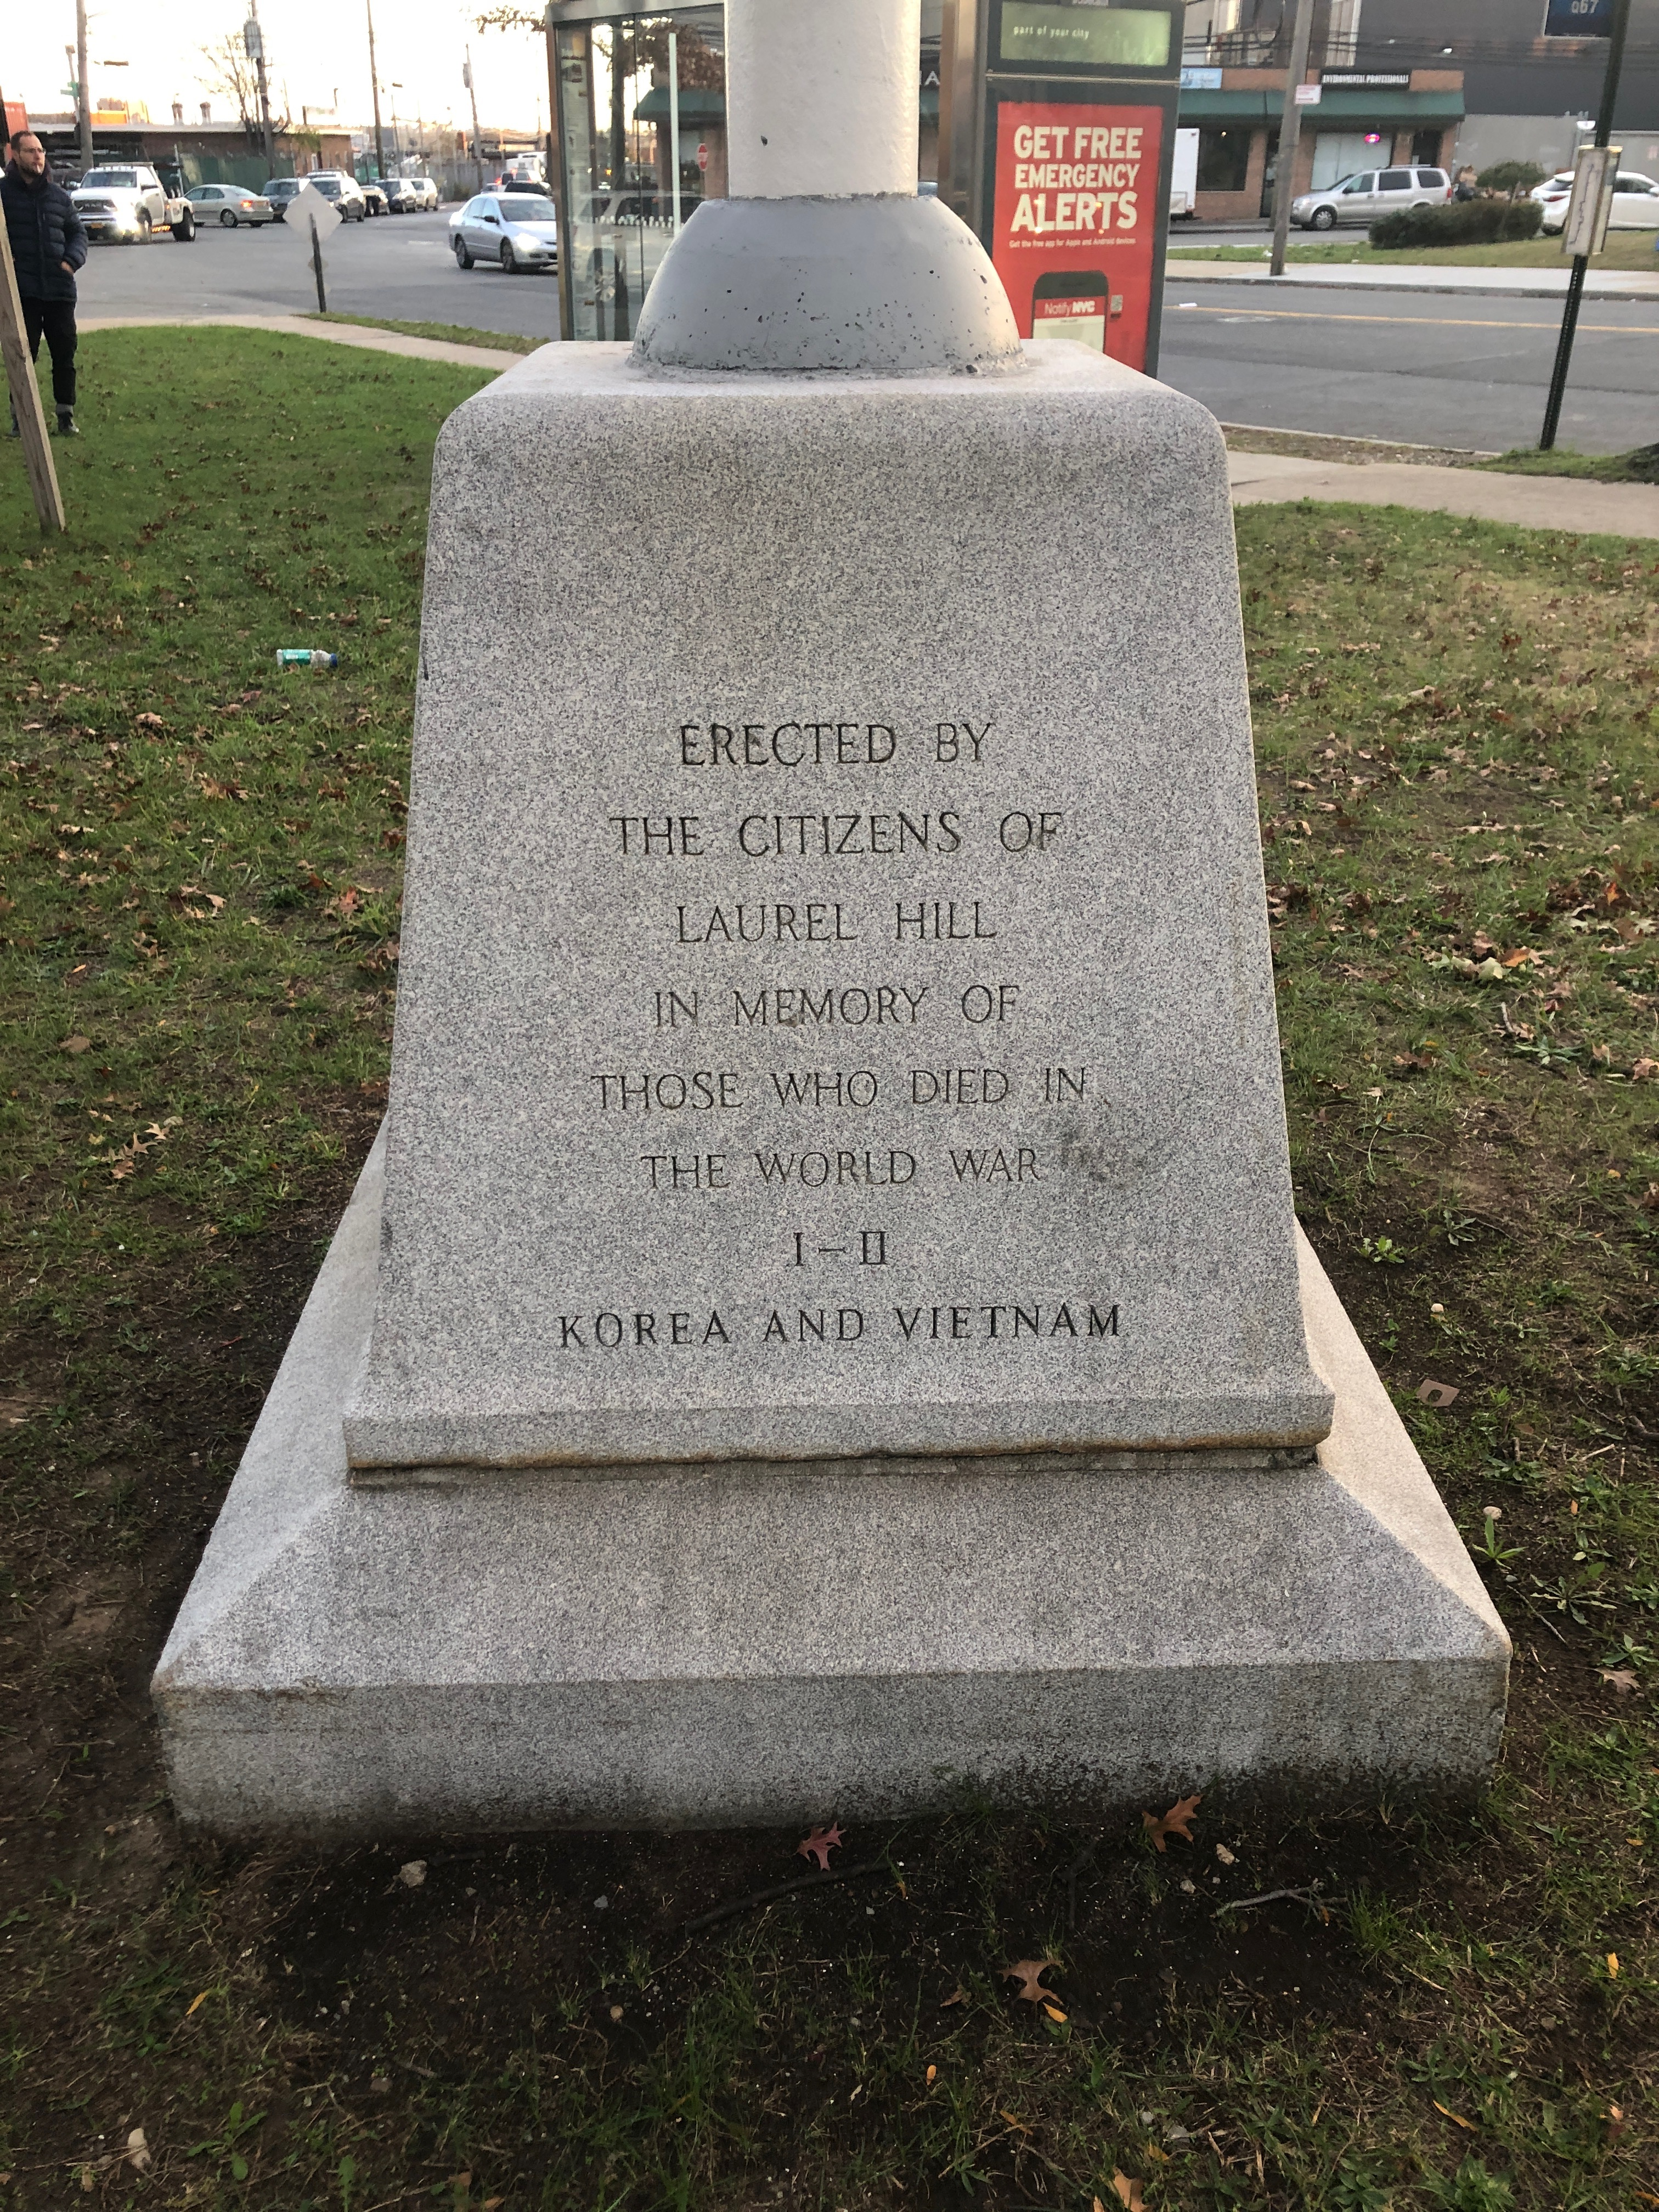 Inscription upon the granite base of the flagstaff